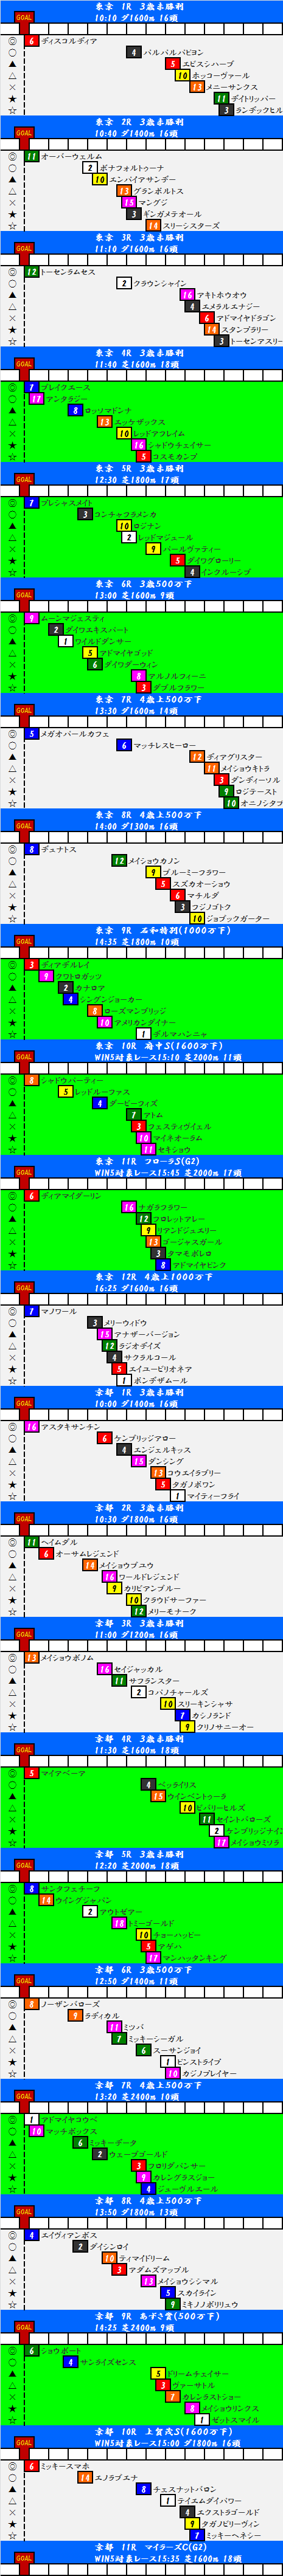 2015042601.png